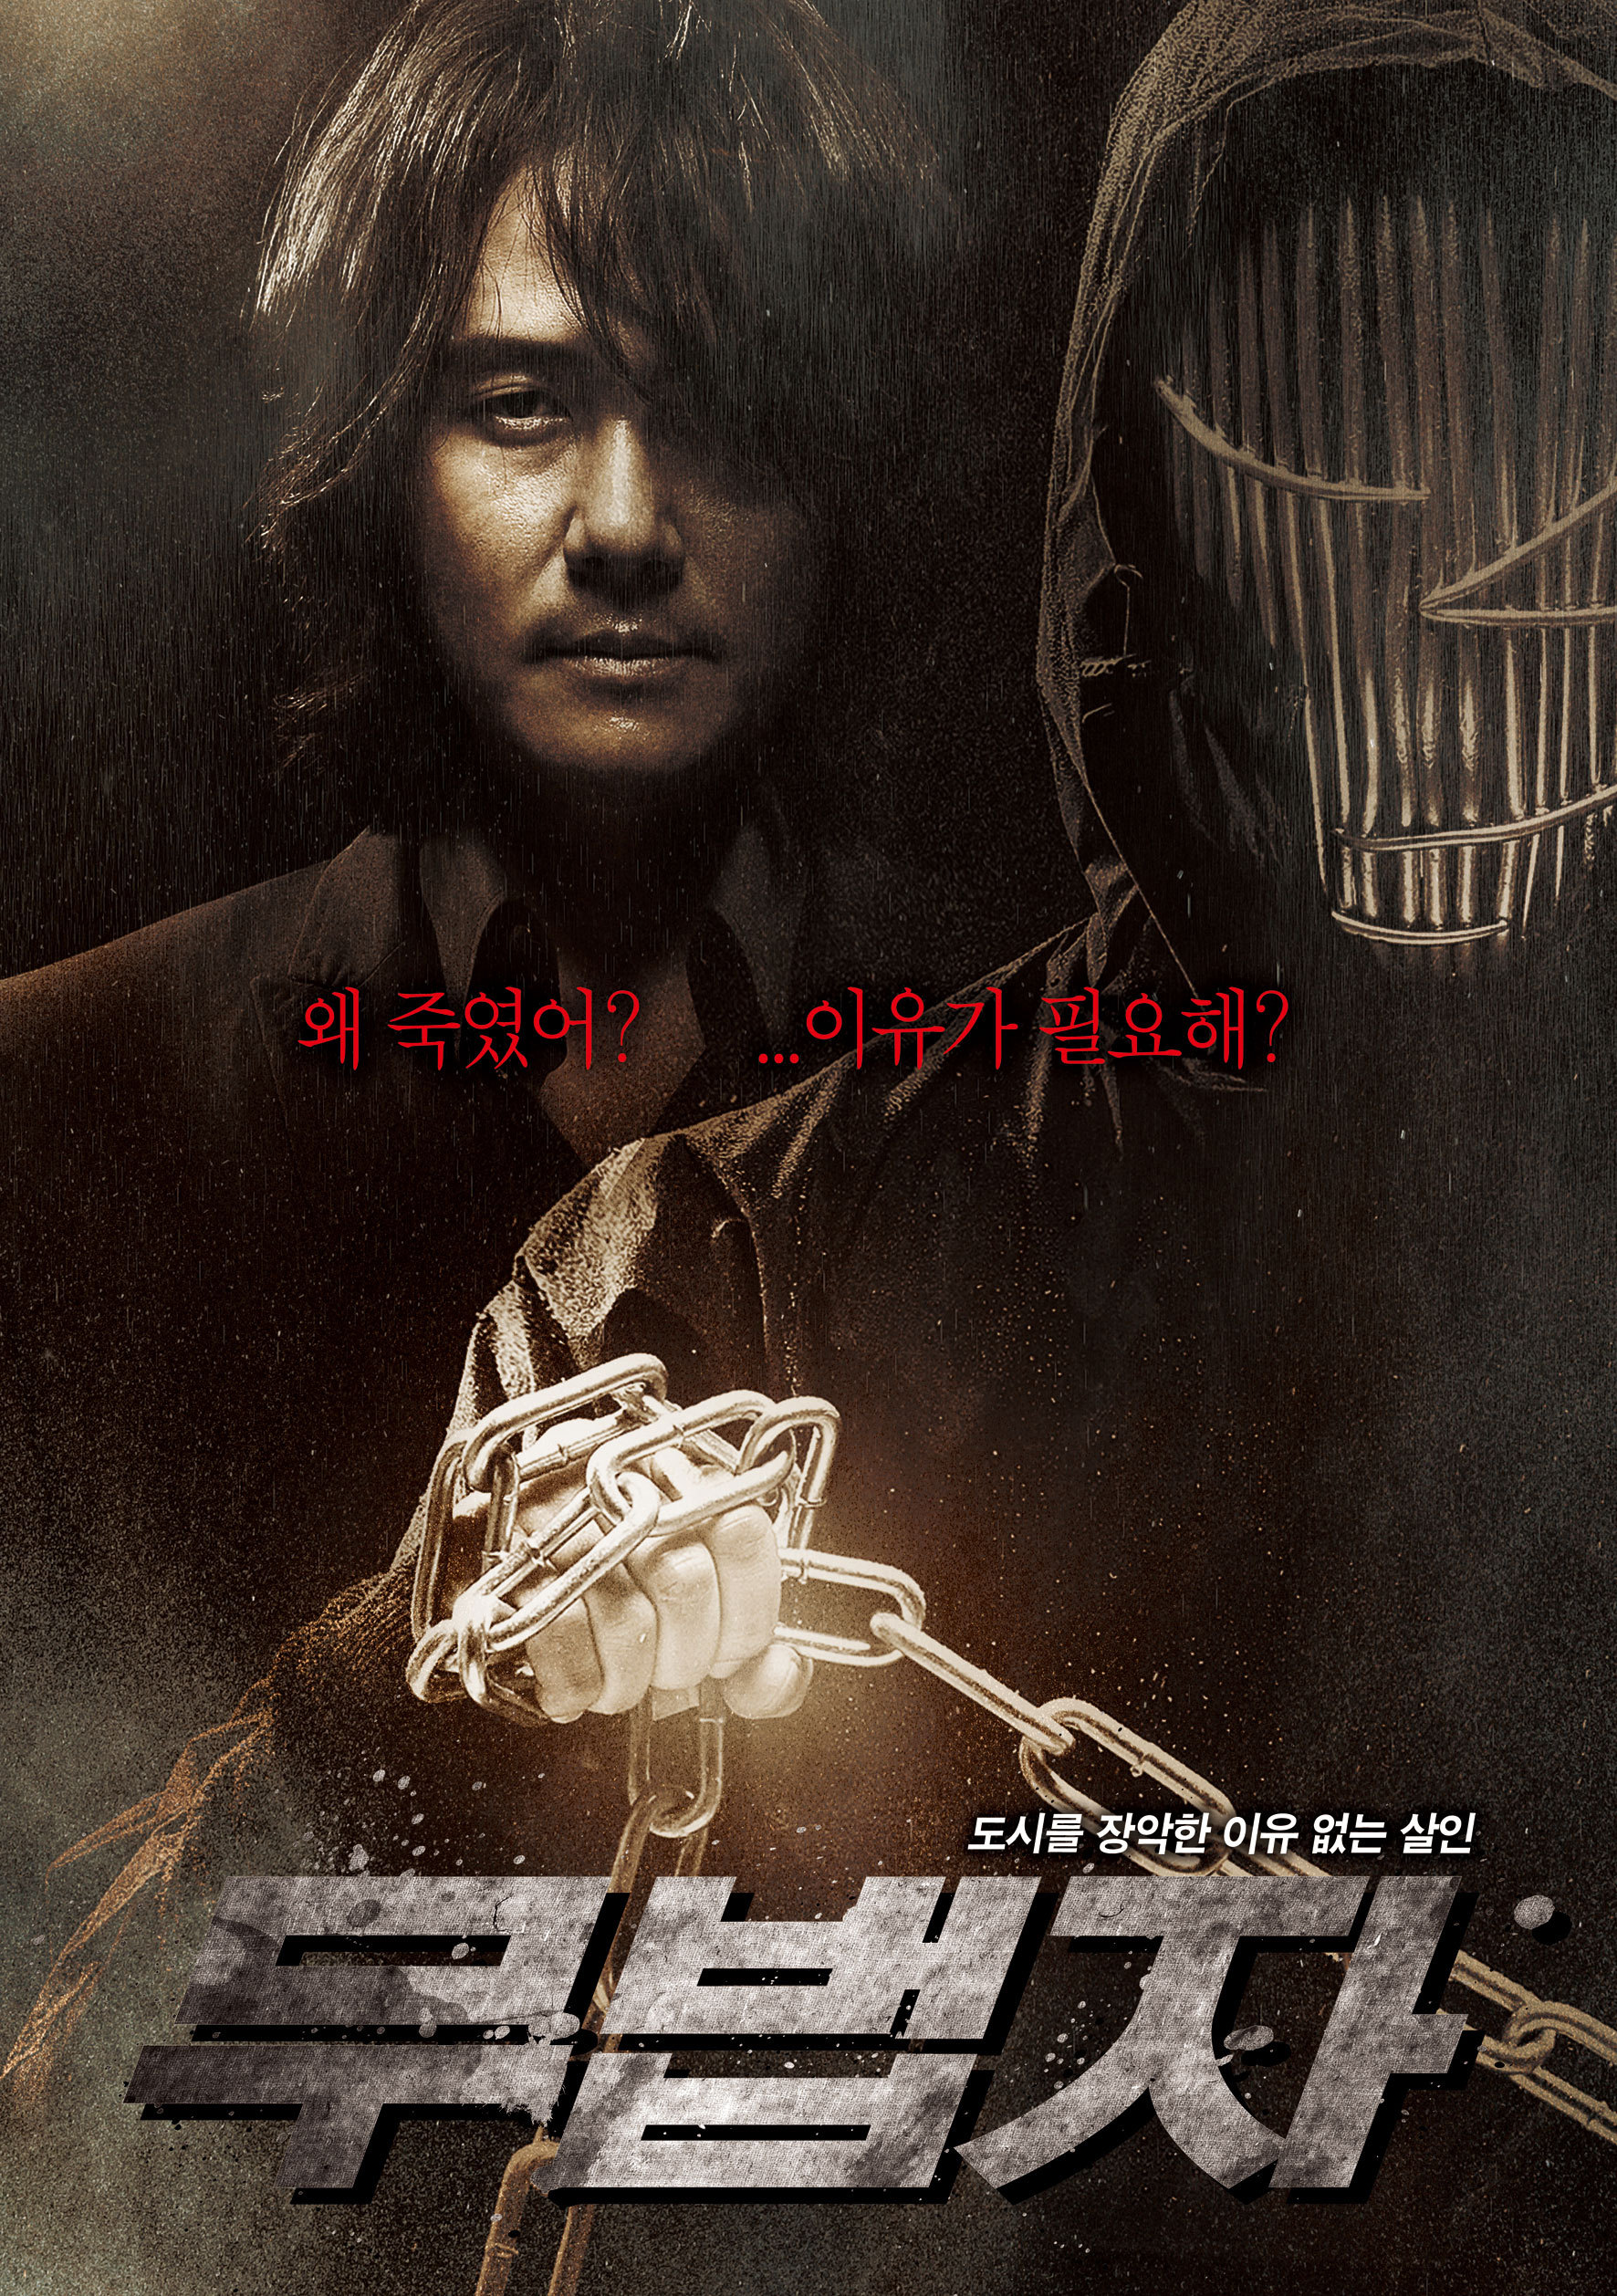 The Outlaw (2010-South Korea-Movie)-p2.jpg